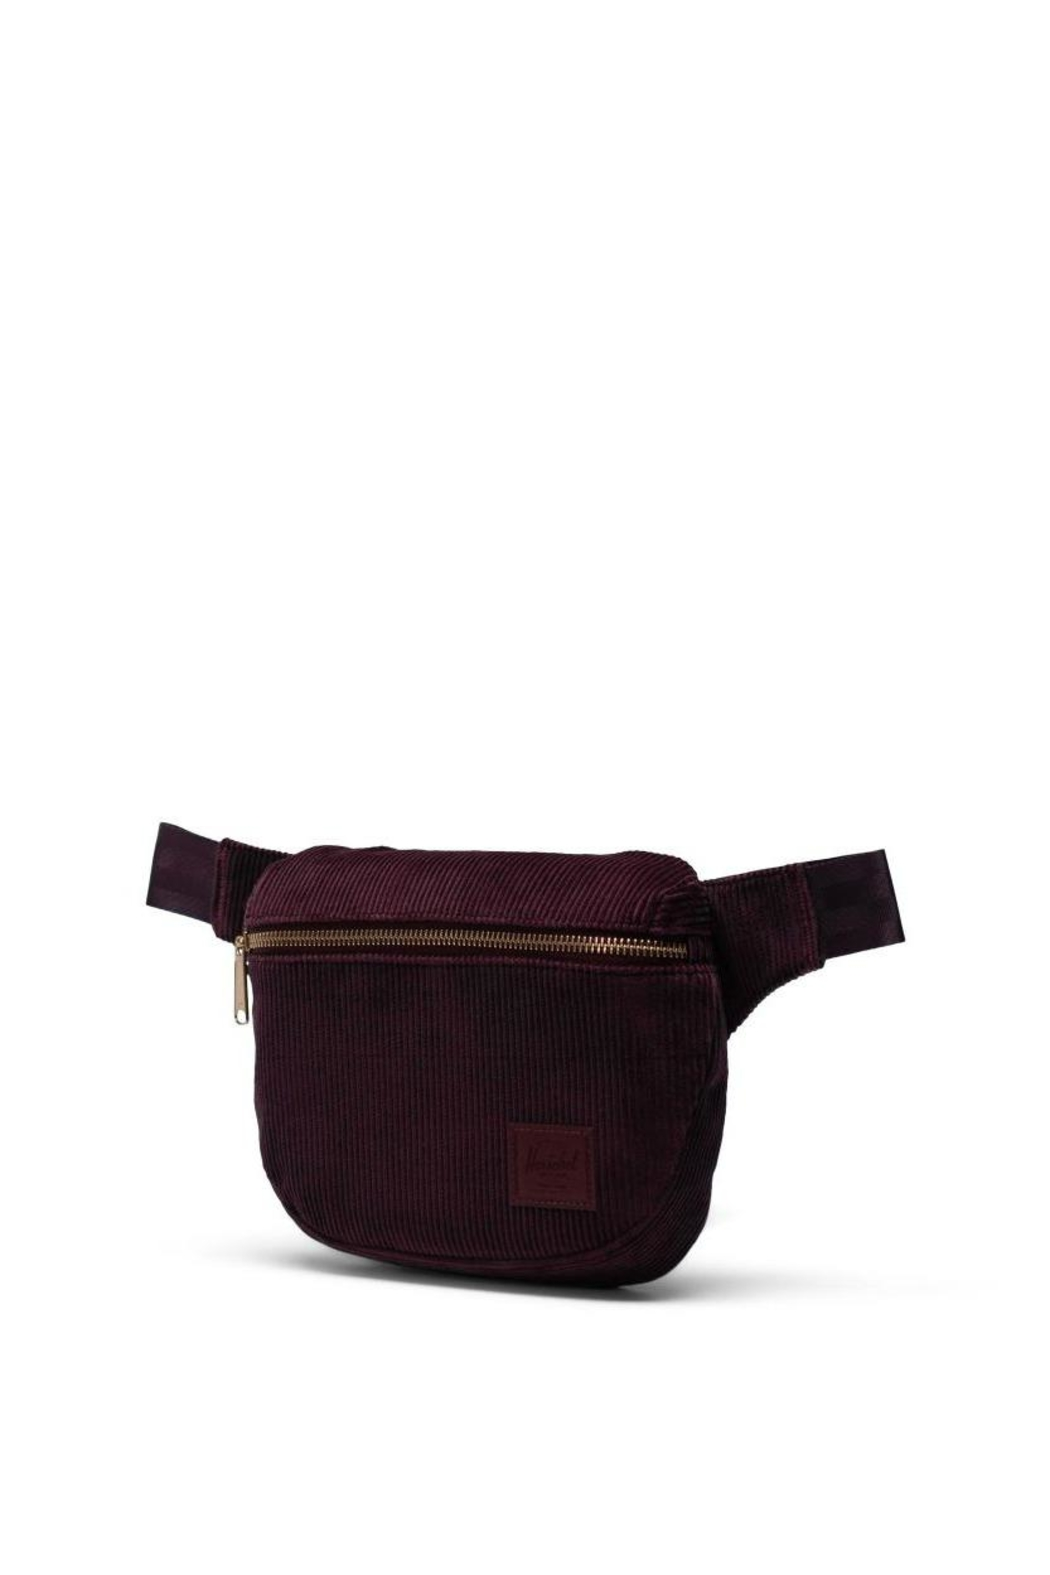 Herschel Supply Co. Corduroy Fanny Pack - Front Full Image